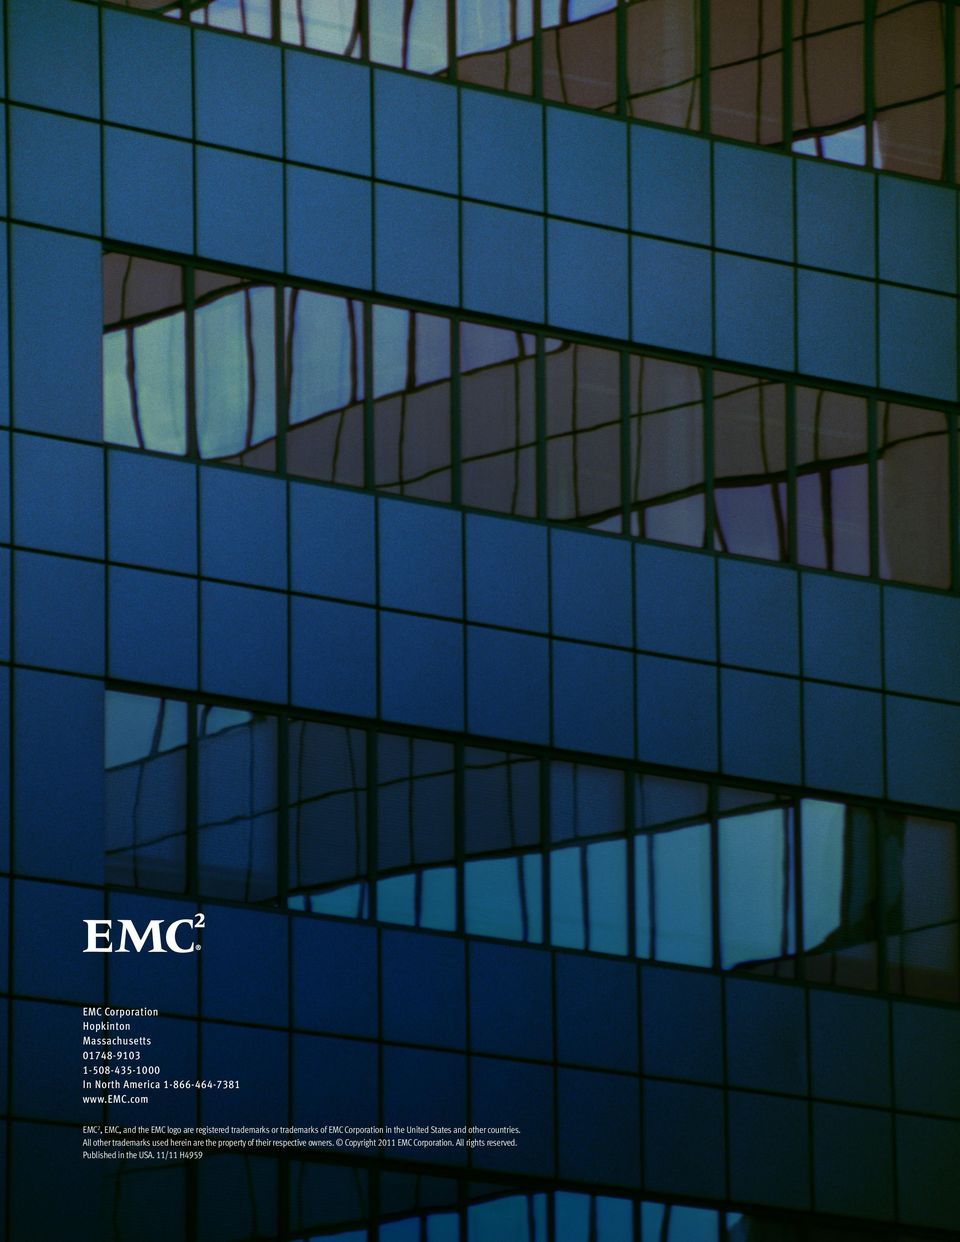 com EMC2, EMC, and the EMC logo are registered trademarks or trademarks of EMC Corporation in the